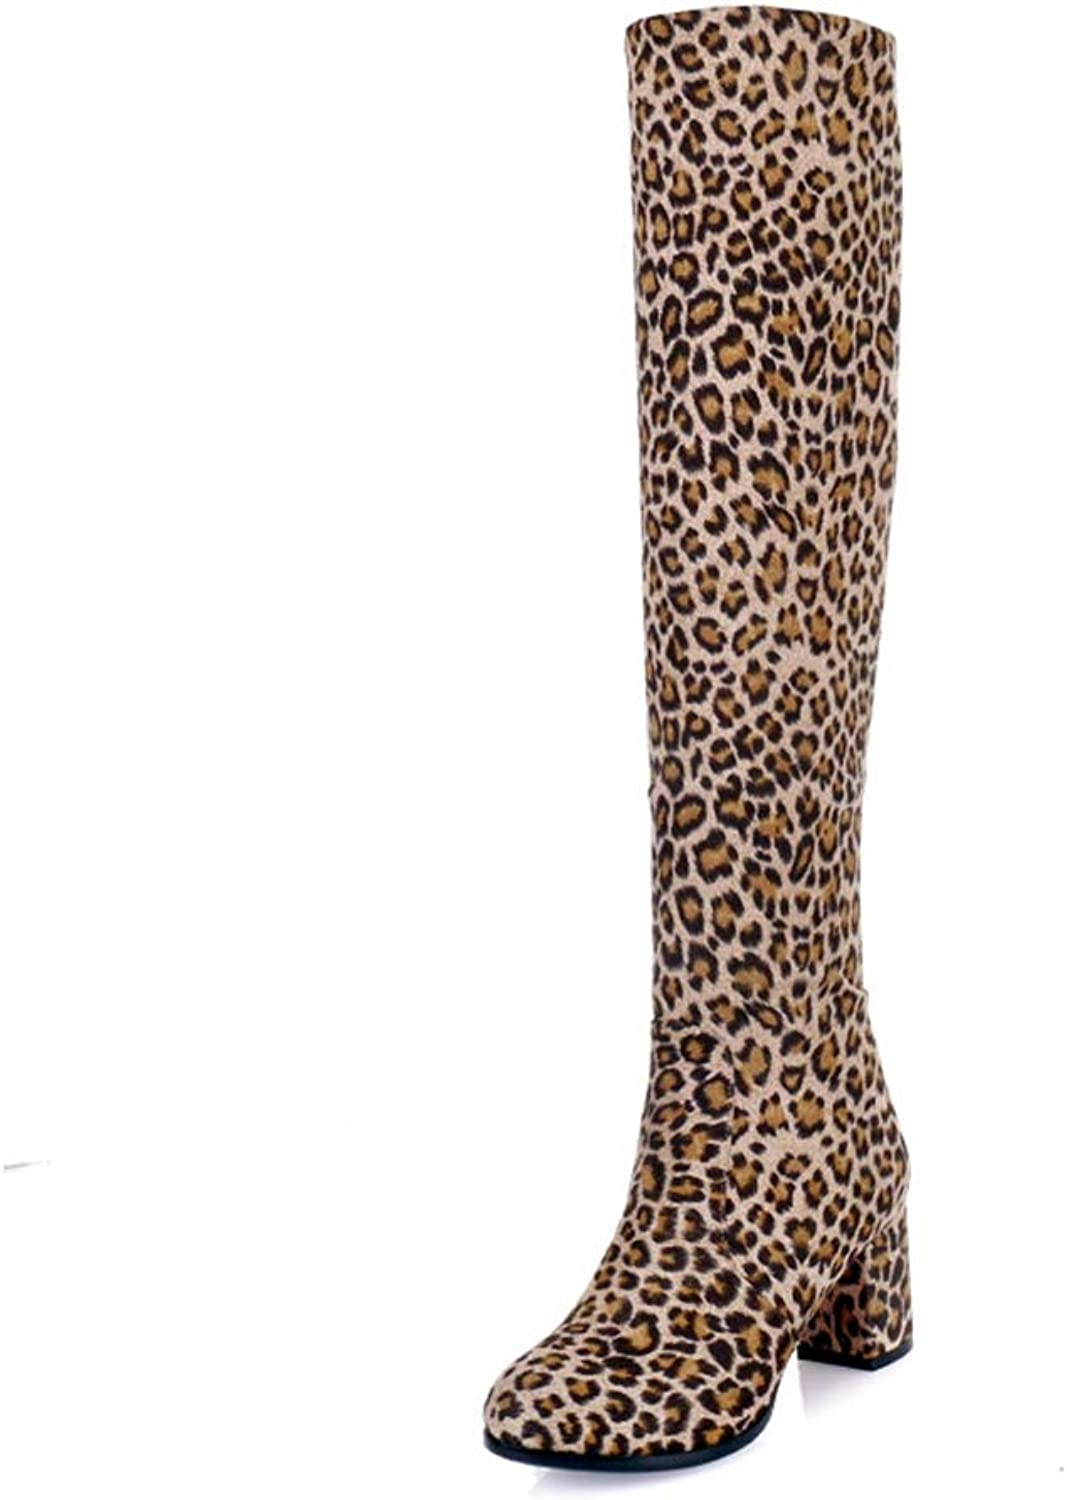 Women Winter Knee high Boots Sexy Leopard Print Thick Footwear Stretch Fashion Party Lady shoes